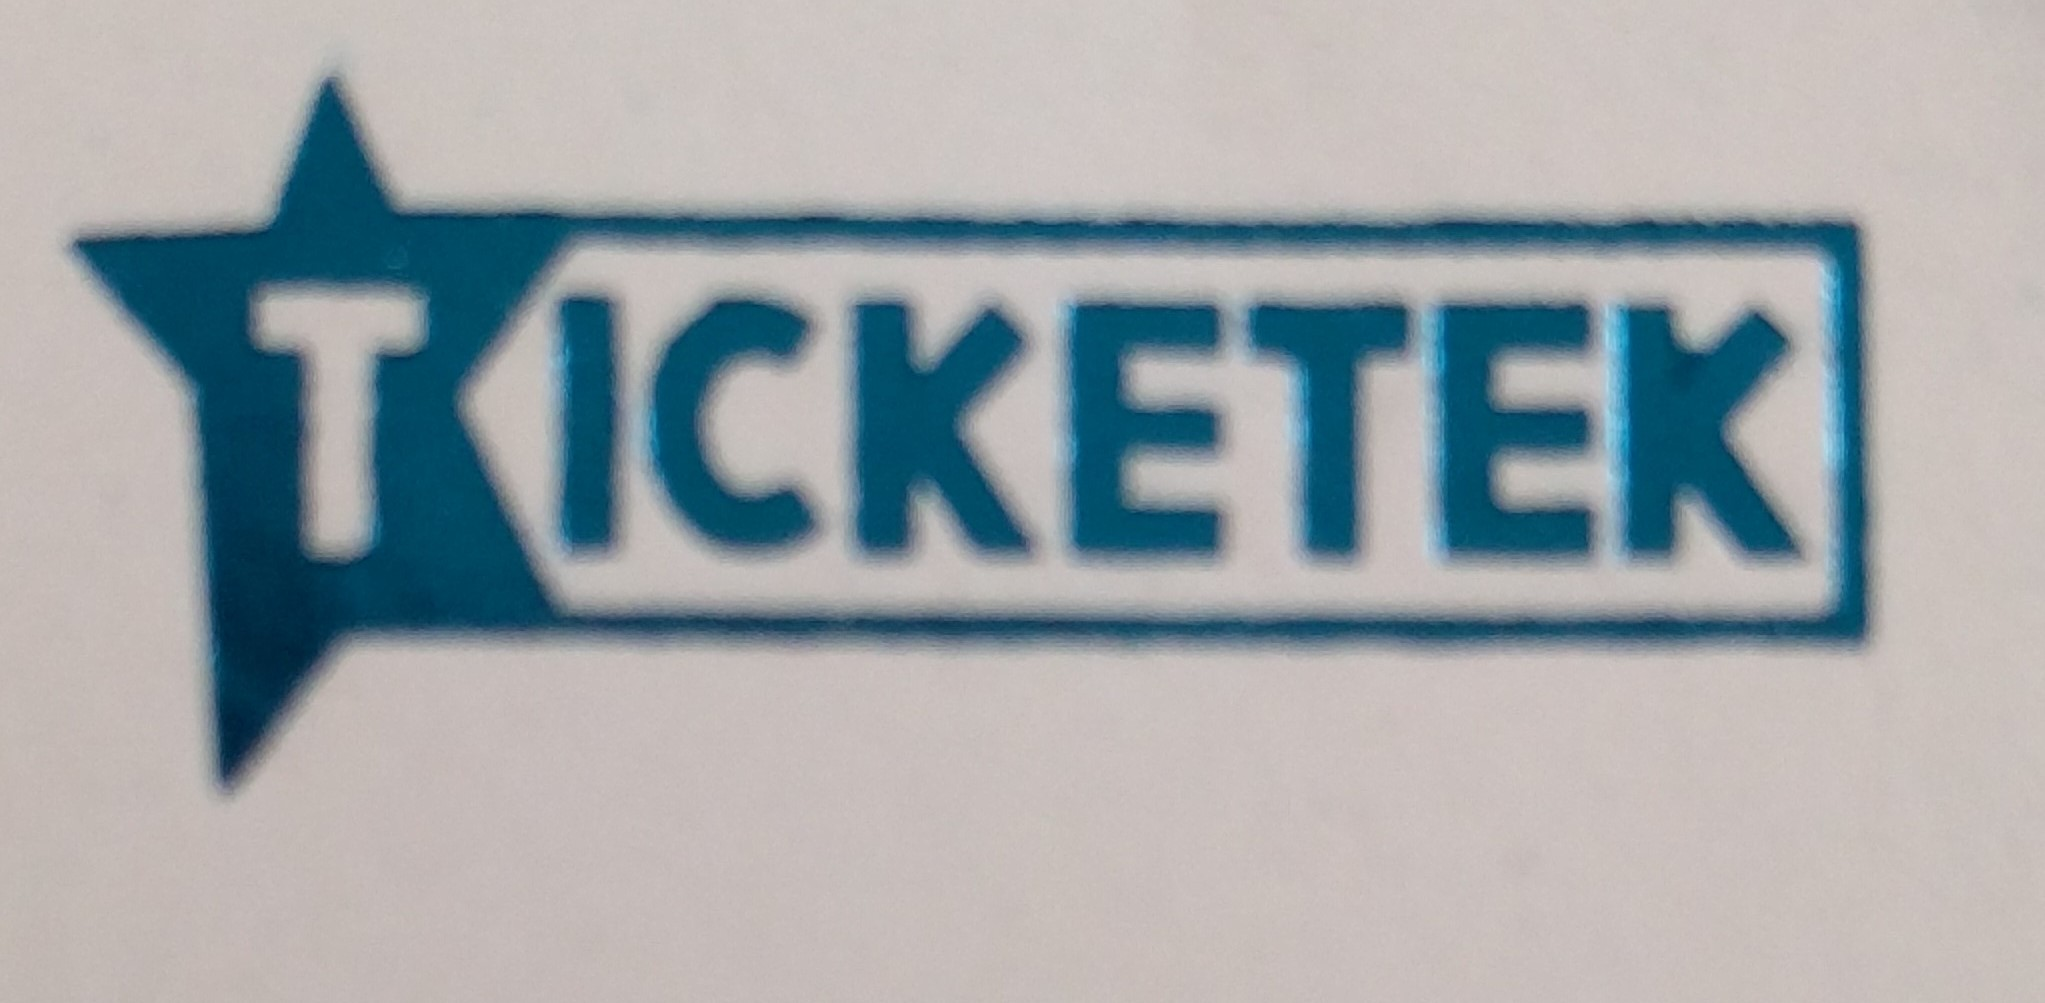 My email to Ticketek